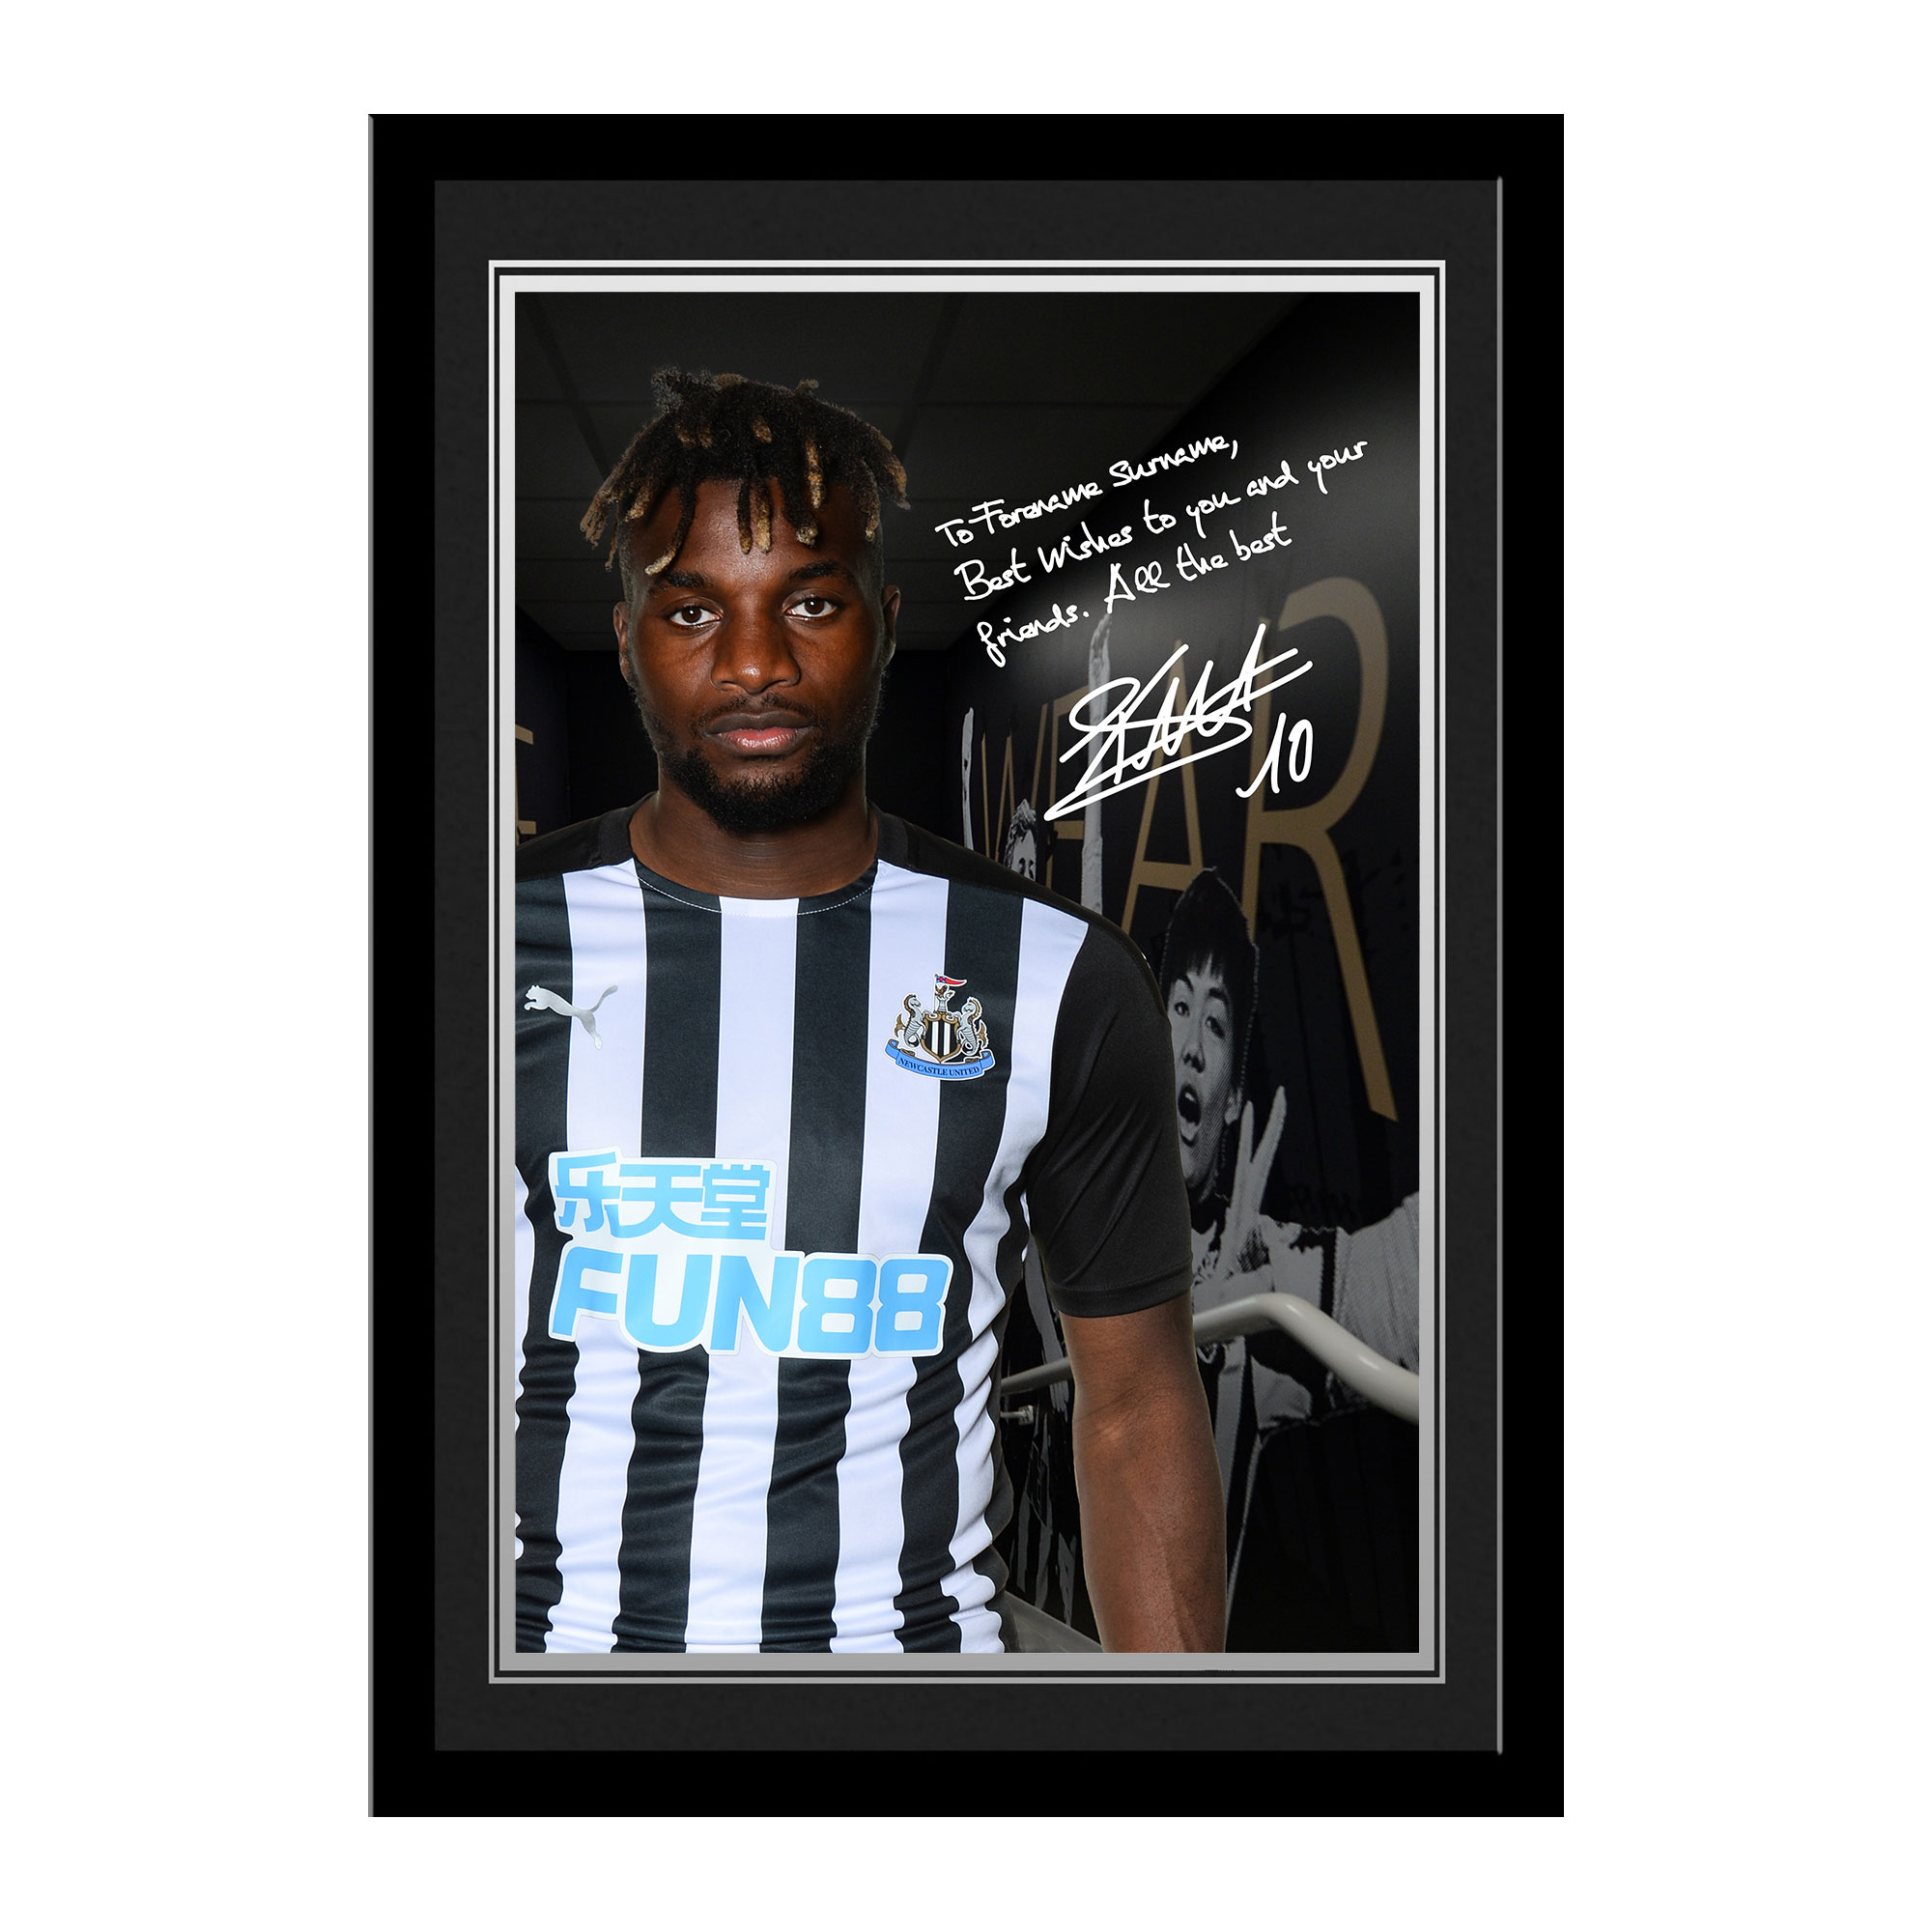 Newcastle United FC Saint-Maximin Autograph Photo Framed